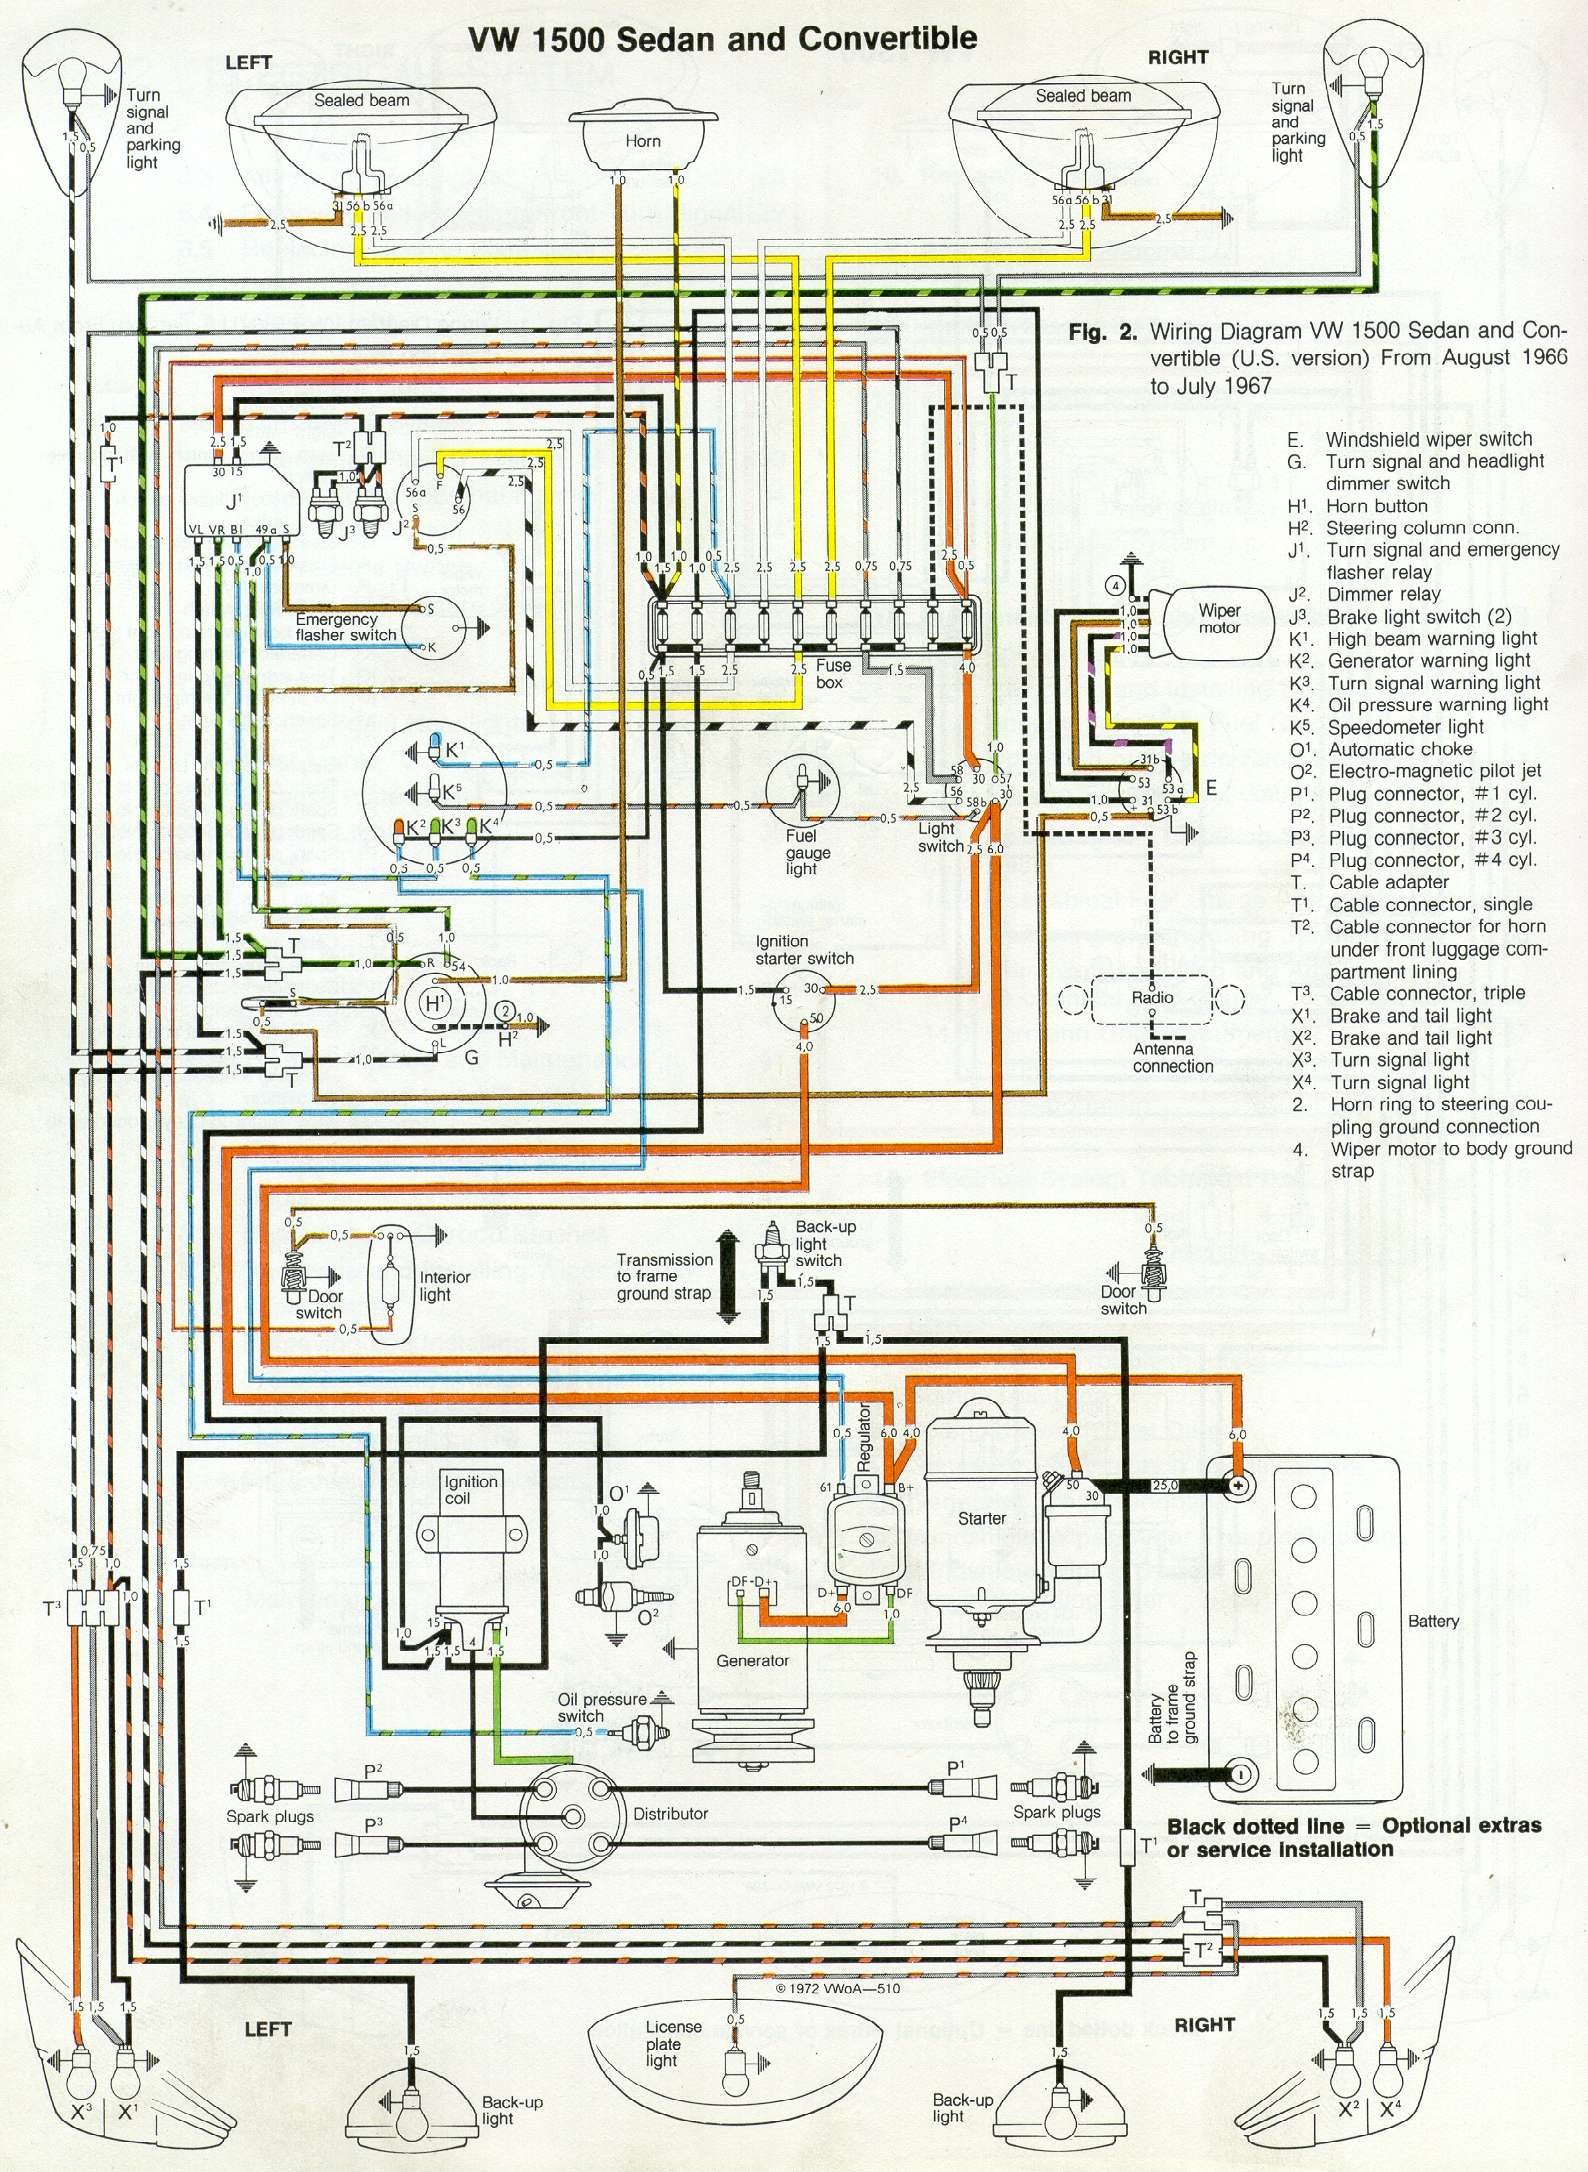 1967 VW 1500 Sedan & Convertible wiring diagram - Drawing A